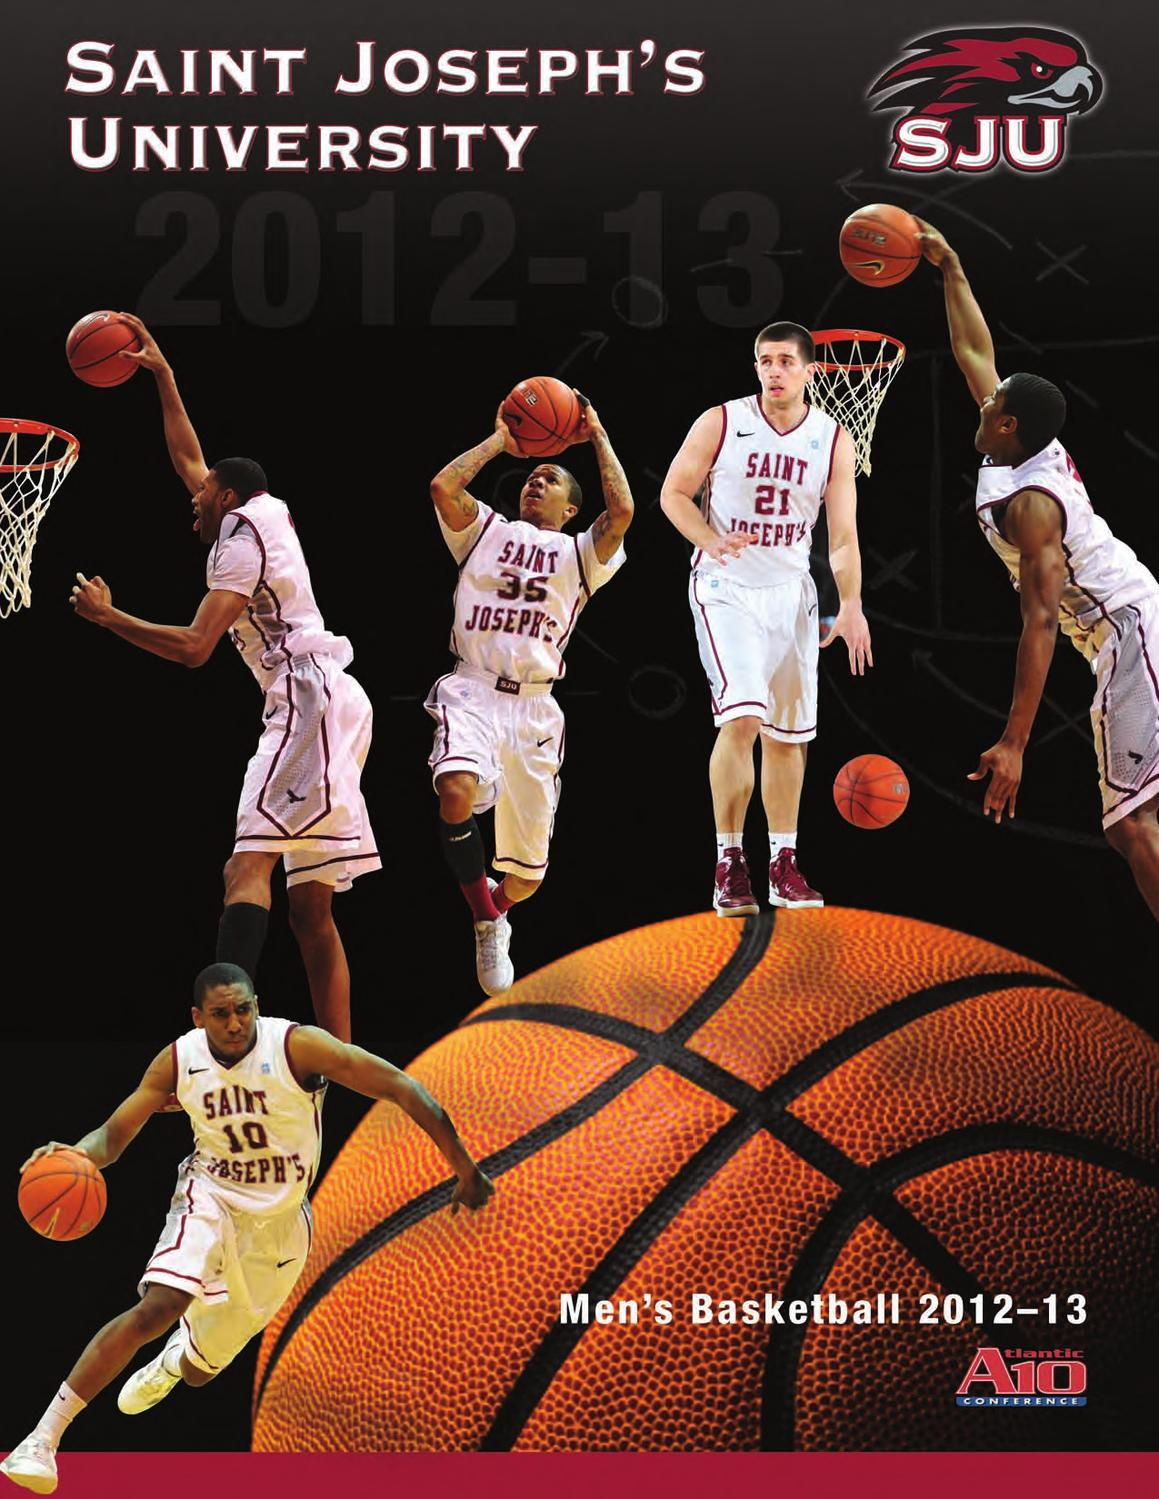 c3f45f7e8a9 2012-13 Saint Joseph s University Men s Basketball Media Guide by Saint  Joseph s Athletics - issuu